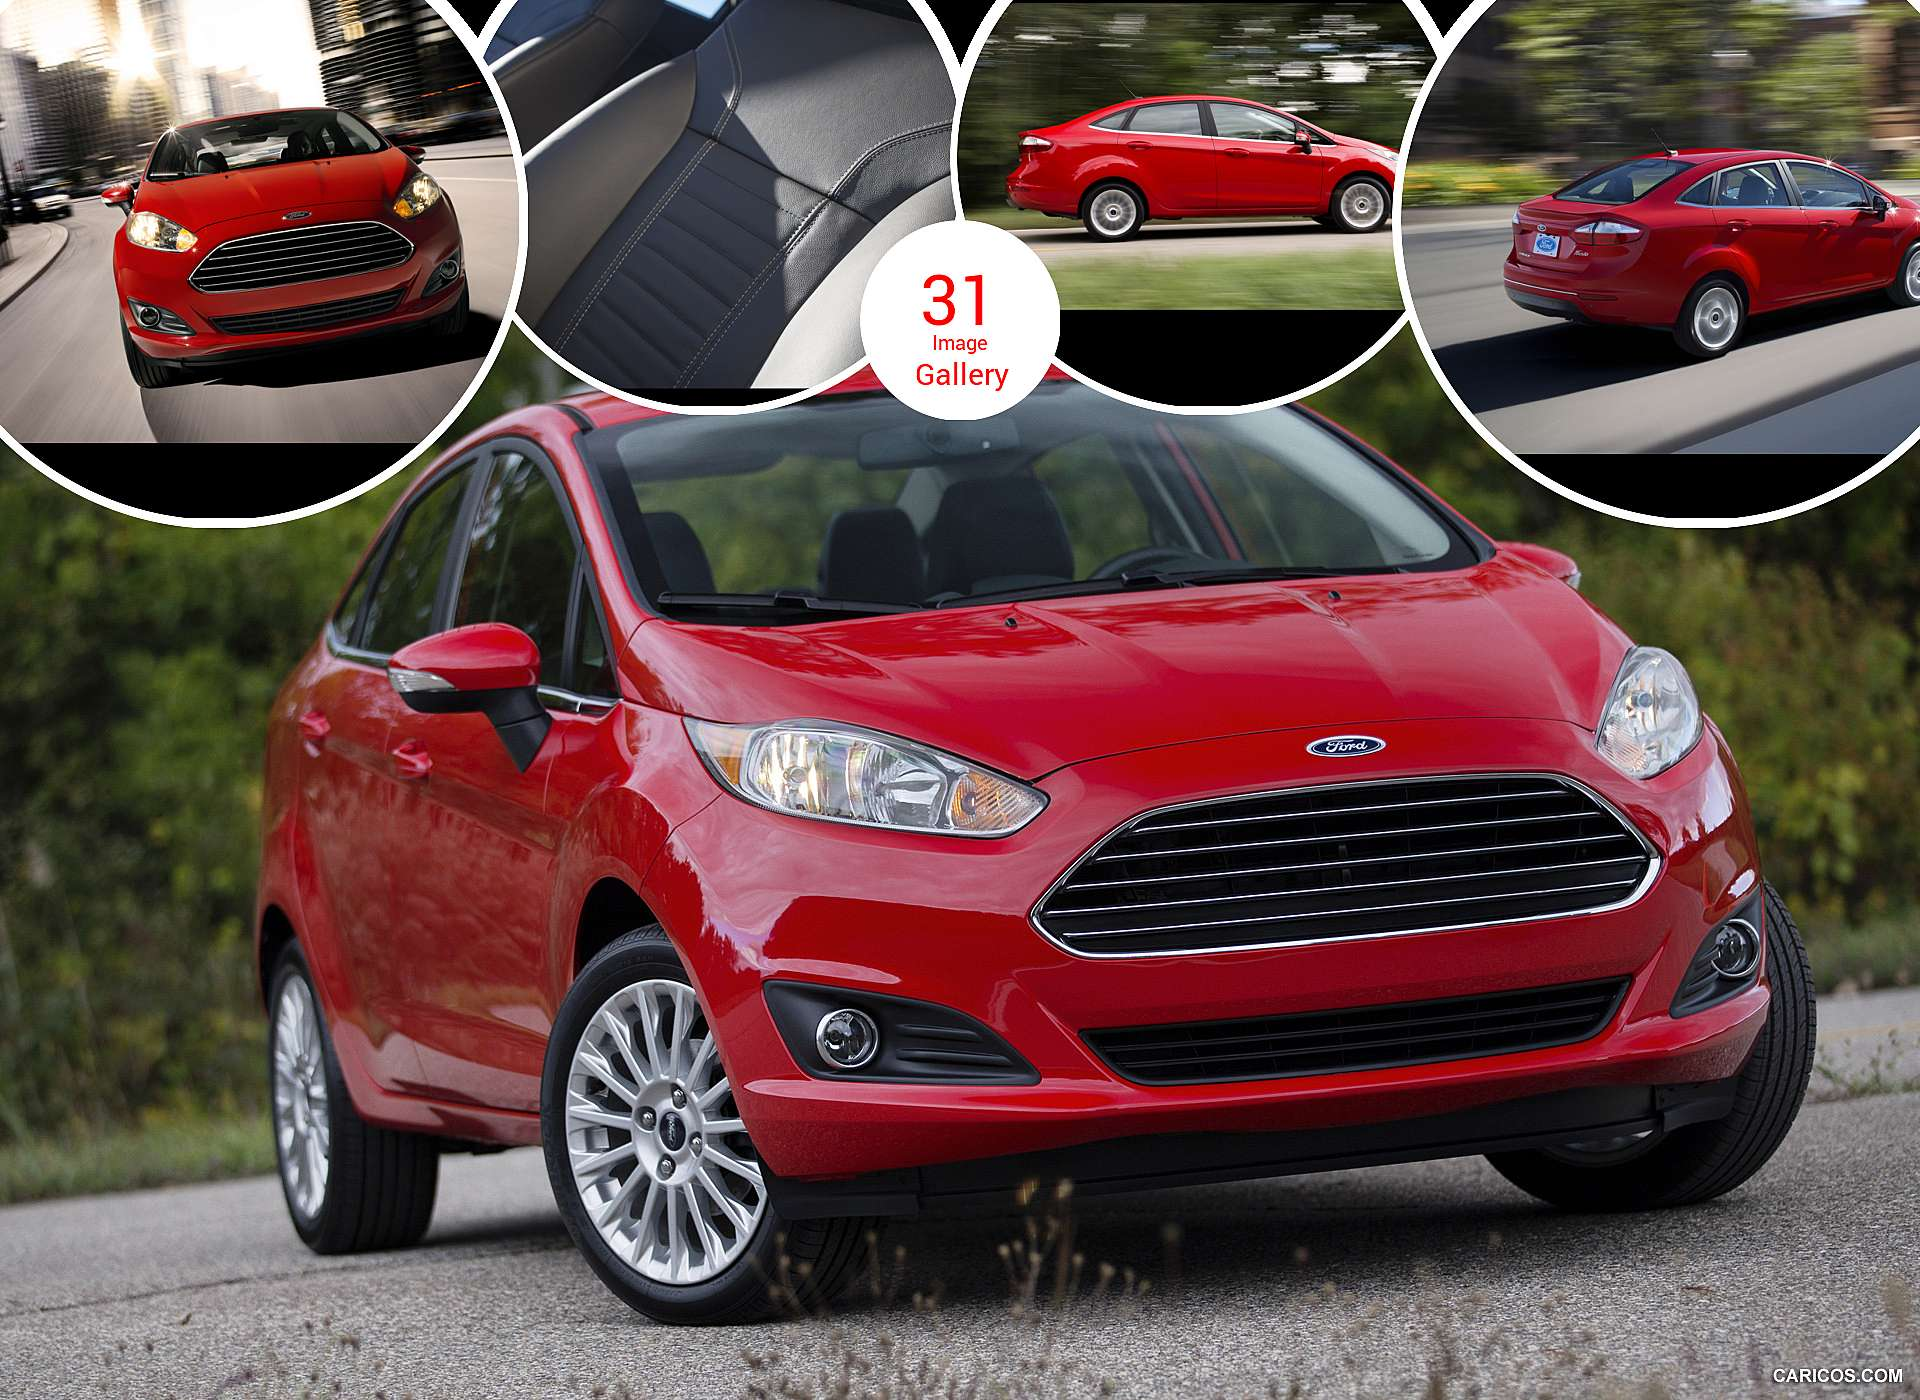 2014 ford fiesta sedan. Cars Review. Best American Auto & Cars Review